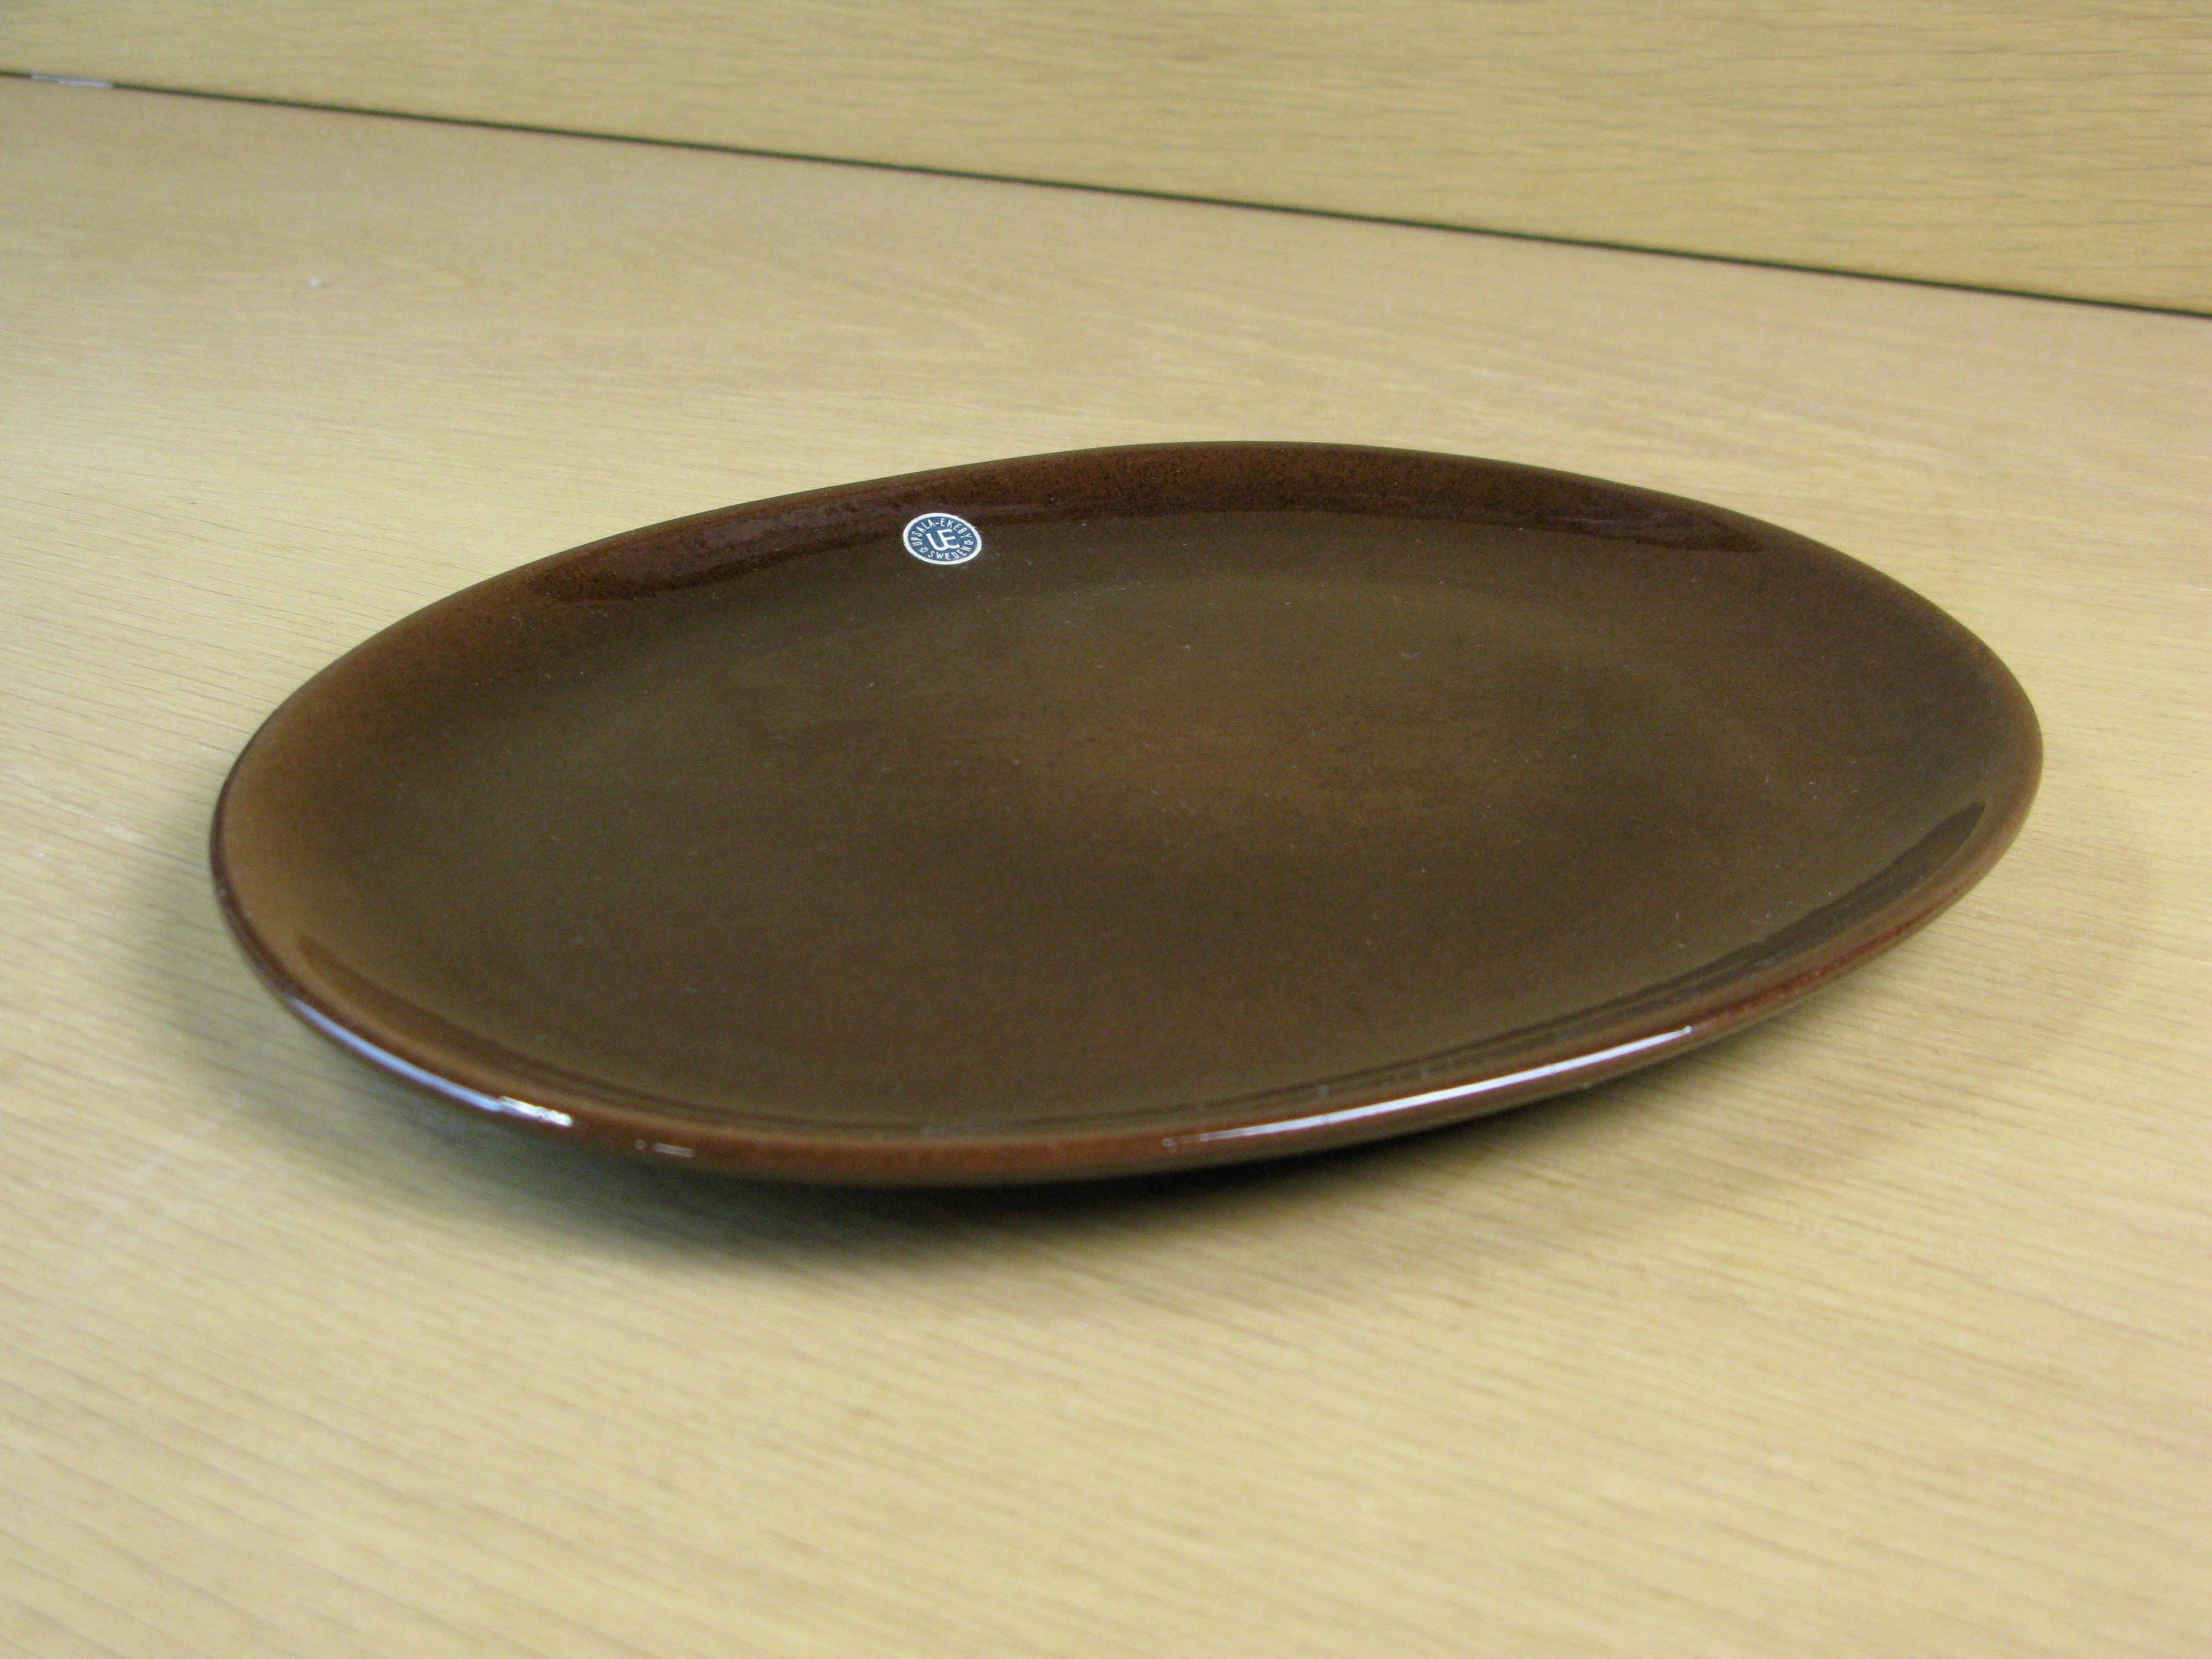 Brown plate argilla 2604